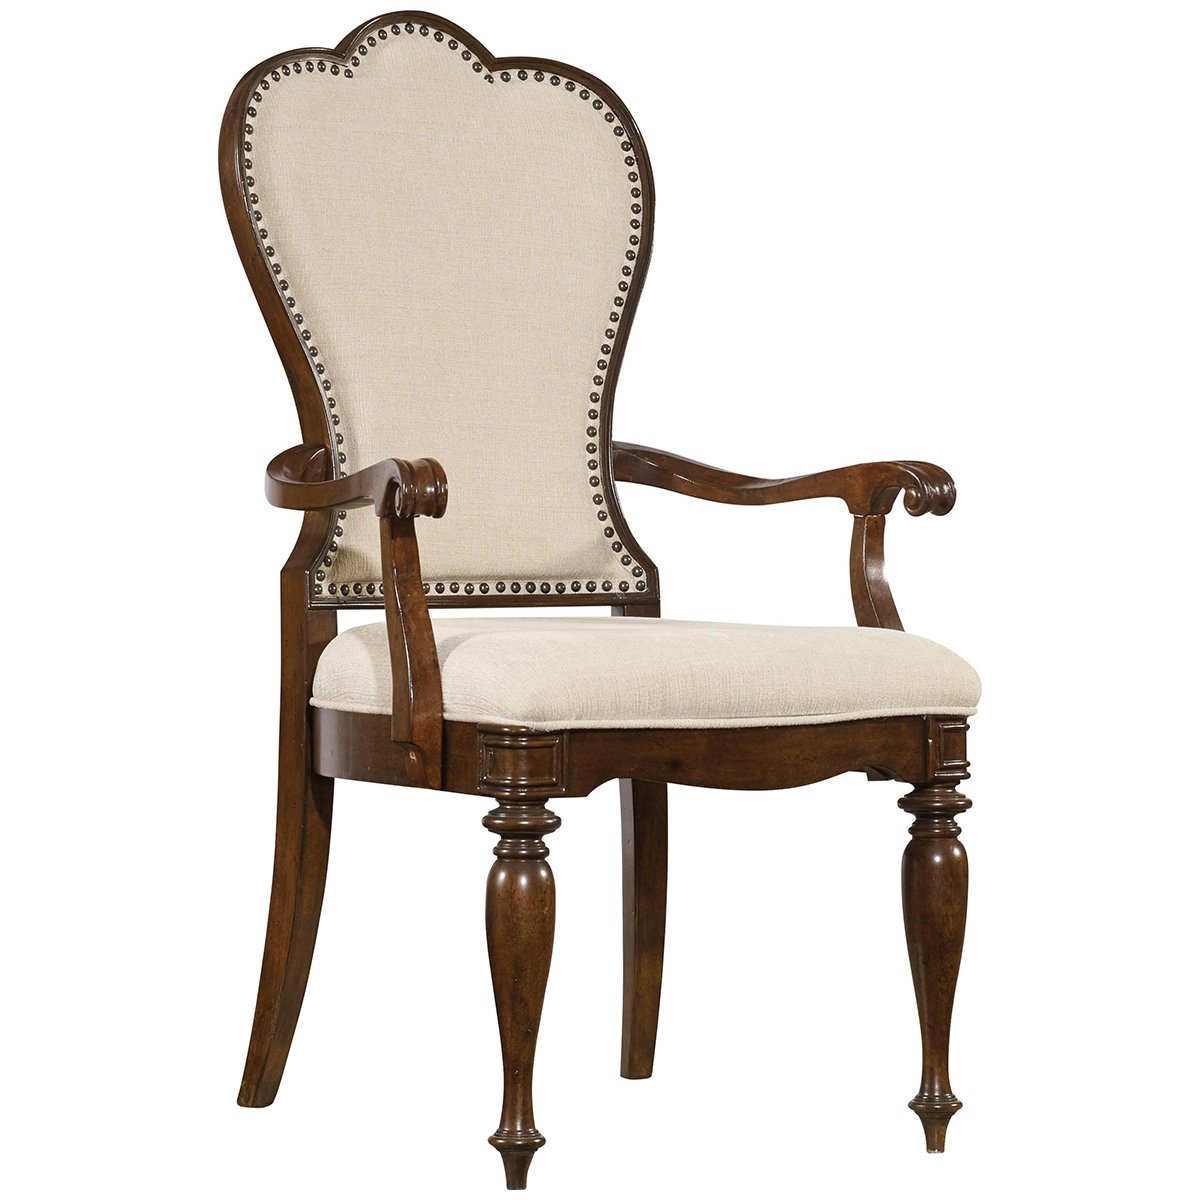 Hooker Furniture Leesburg Dining Arm Chair in Mahogany by Hooker Furniture